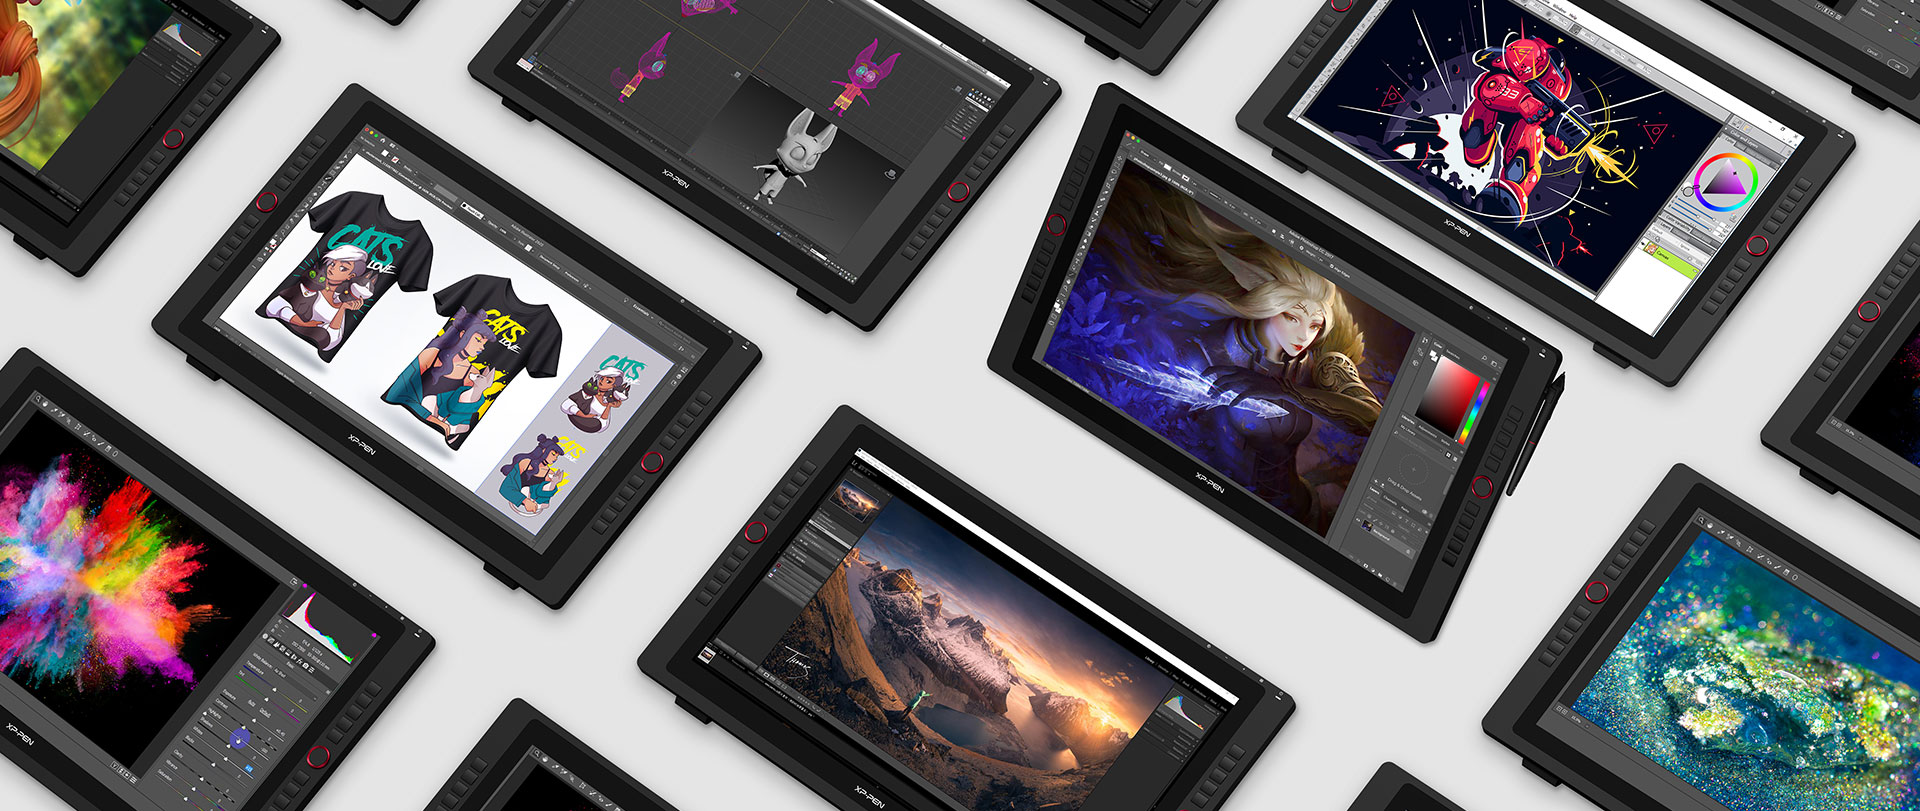 tableta digitalizadora XP-Pen Artist 24 Pro compatible con Windows , MAc OS y software de arte digital popular